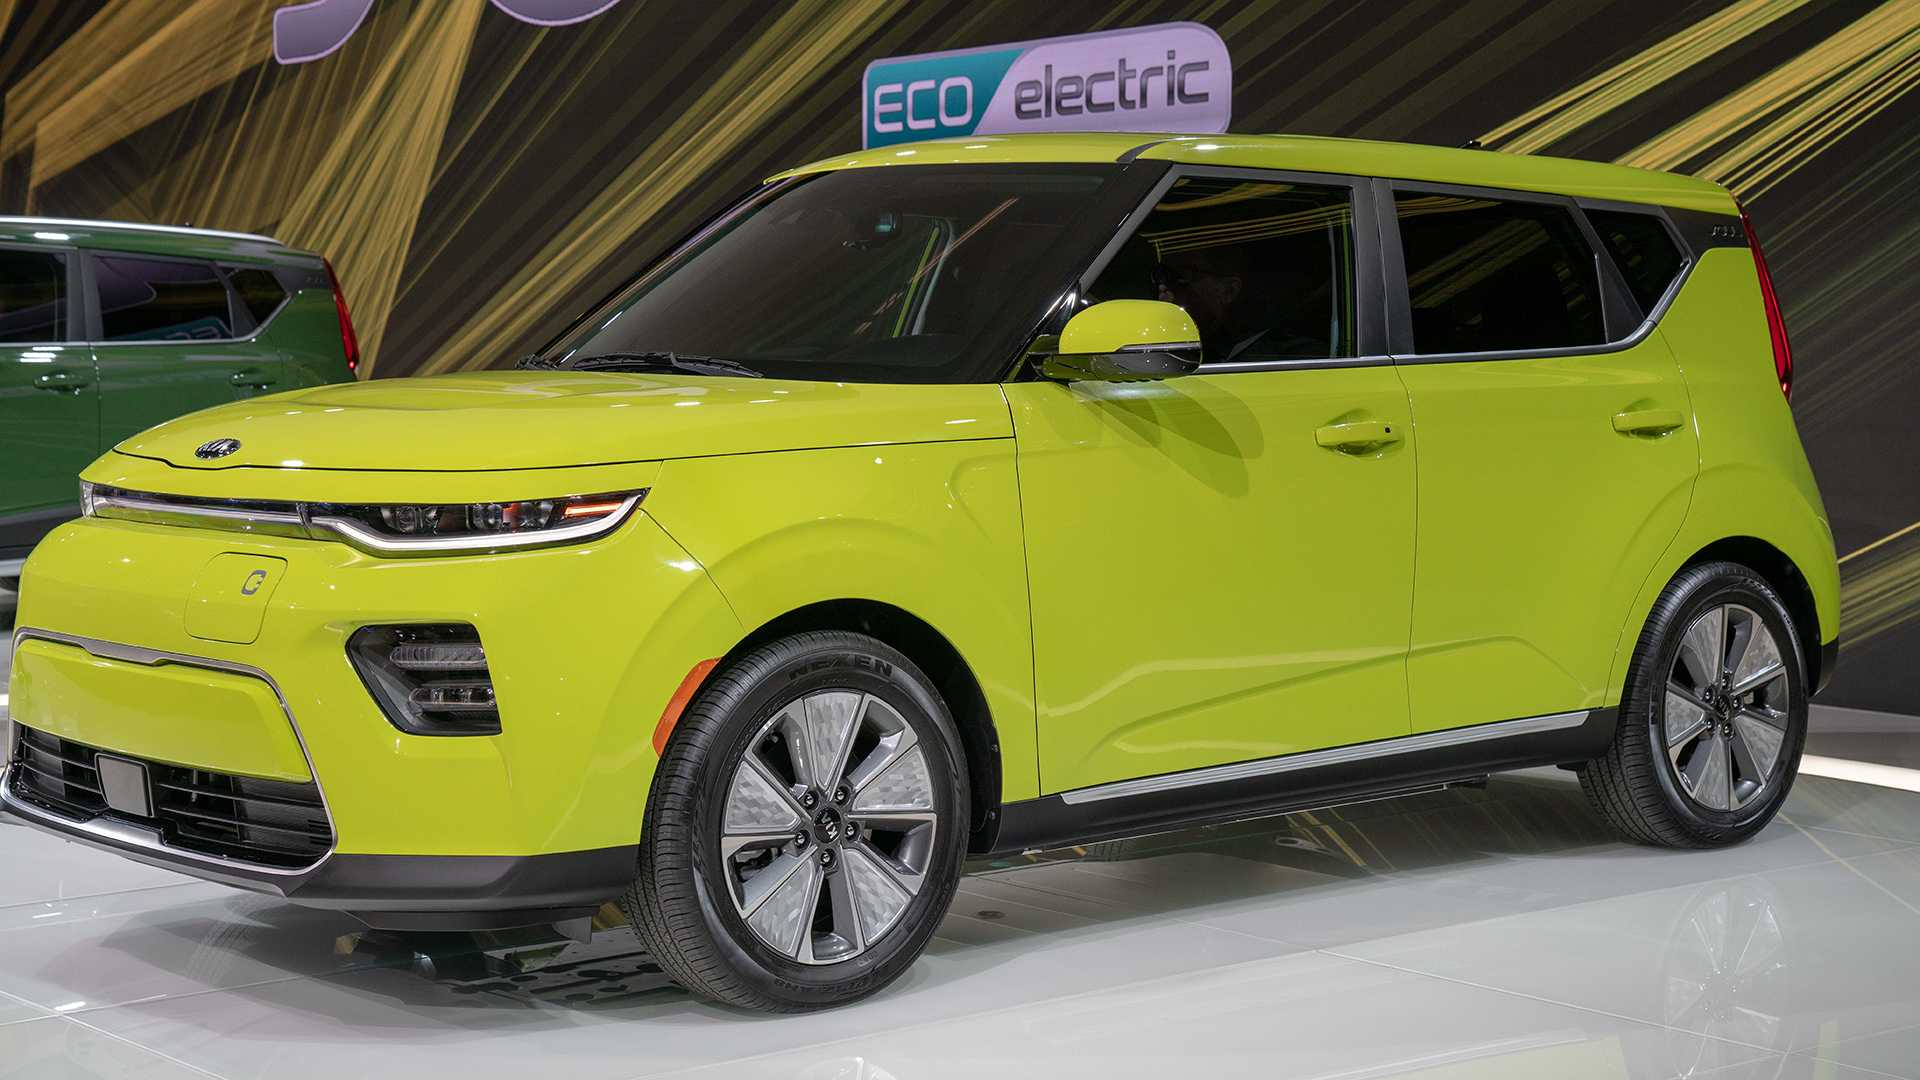 46 Great Kia Electric Suv 2020 Prices by Kia Electric Suv 2020